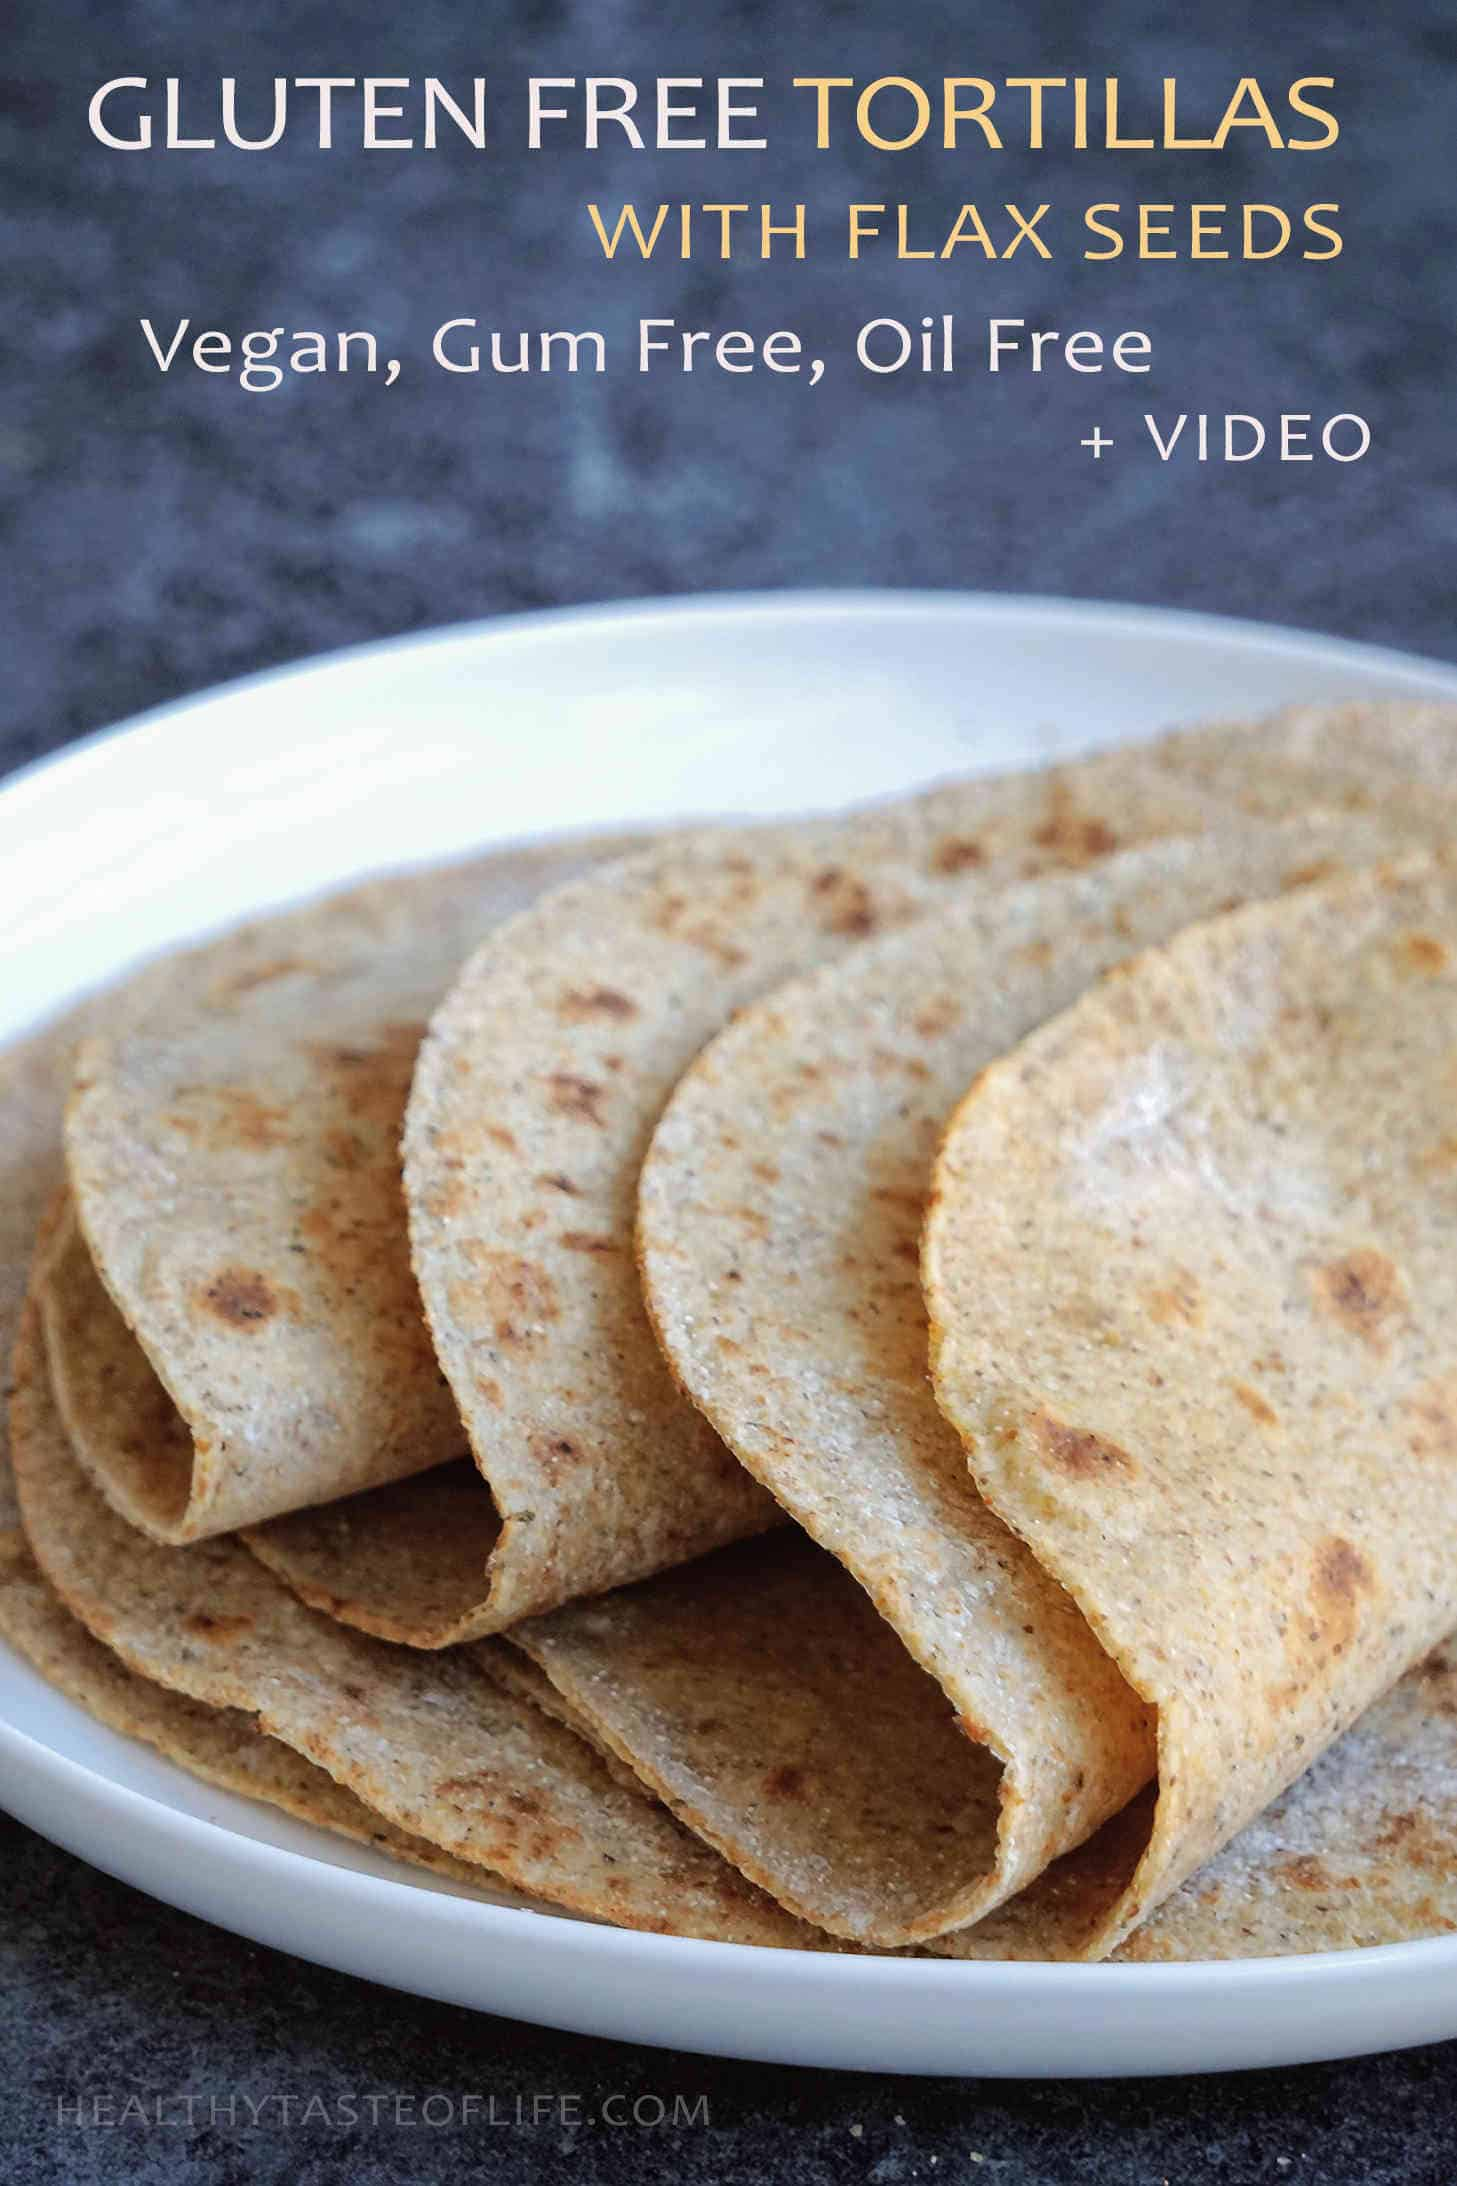 Healthy tortillas recipe (gluten free, vegan) made with cassava flour, flax seeds, chia seeds and a mix of gluten free flours. Makes 5 healthy gluten free tortillas. These homemade gluten free tortillas are nutrient packed— great for wraps, tacos, burritos or enchiladas.